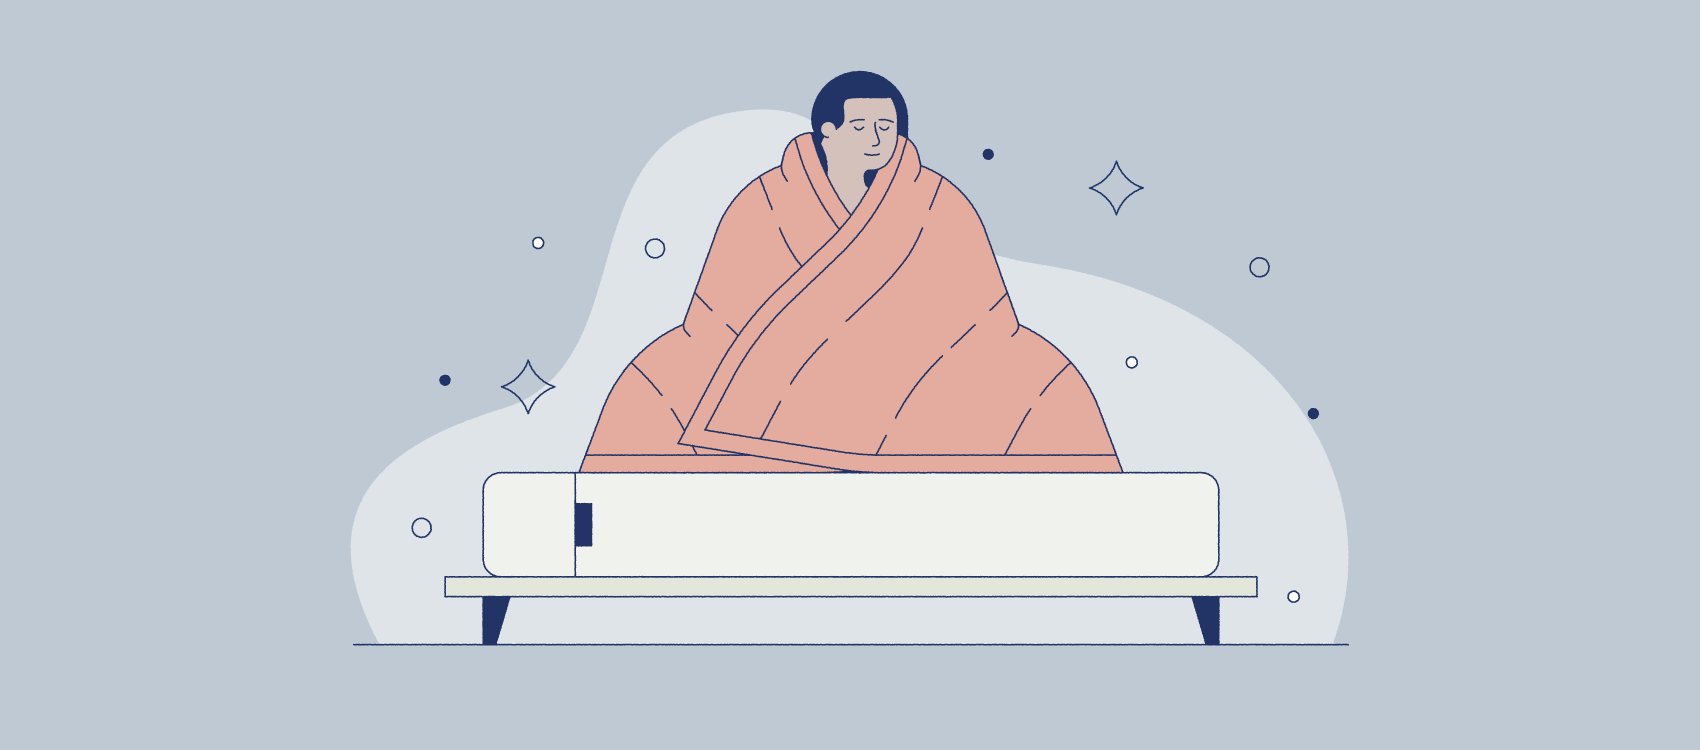 a person wrapping themselves in a weighted blanket